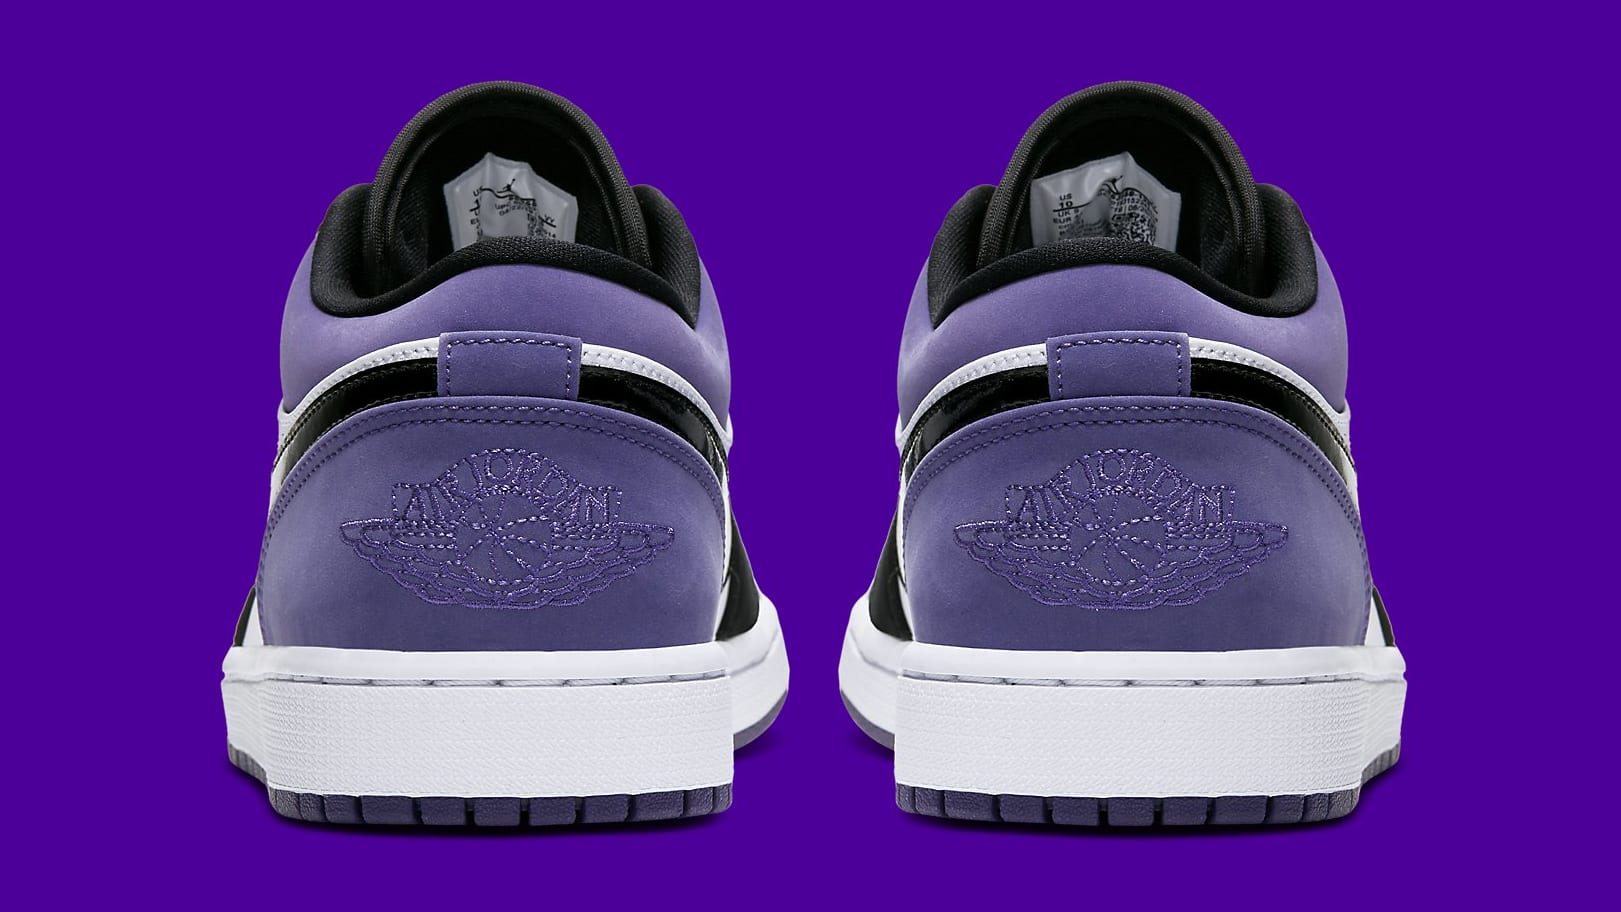 air-jordan-1-low-court-purple-553558-125-heel